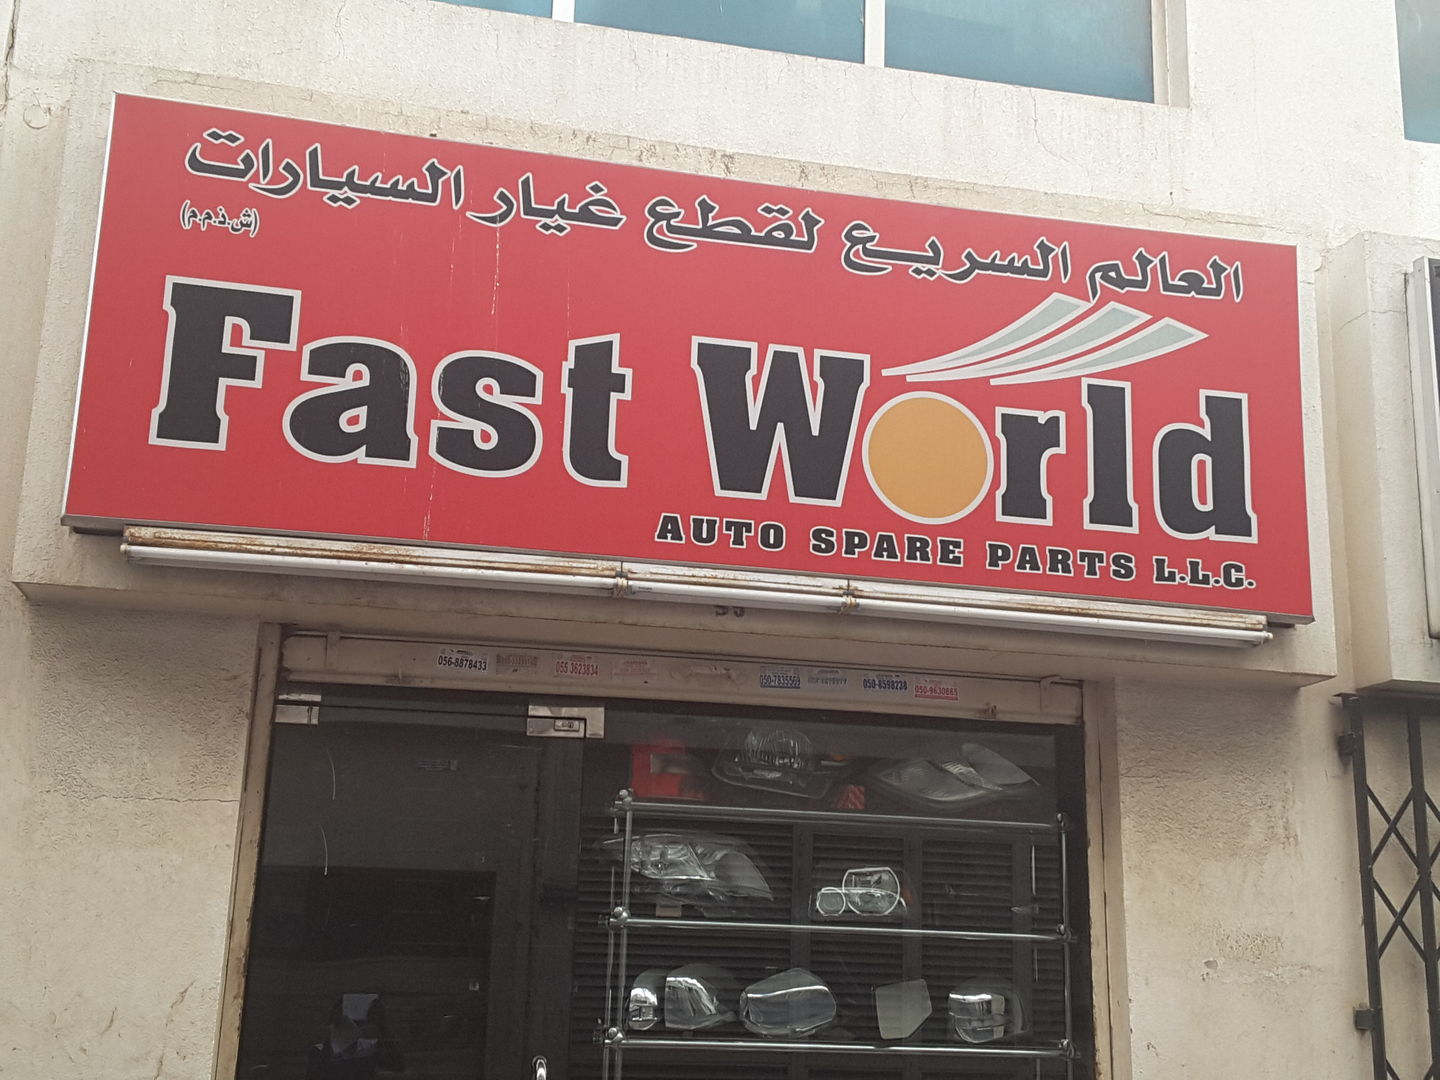 Fast World Auto Spare Parts, (Distributors & Wholesalers) in